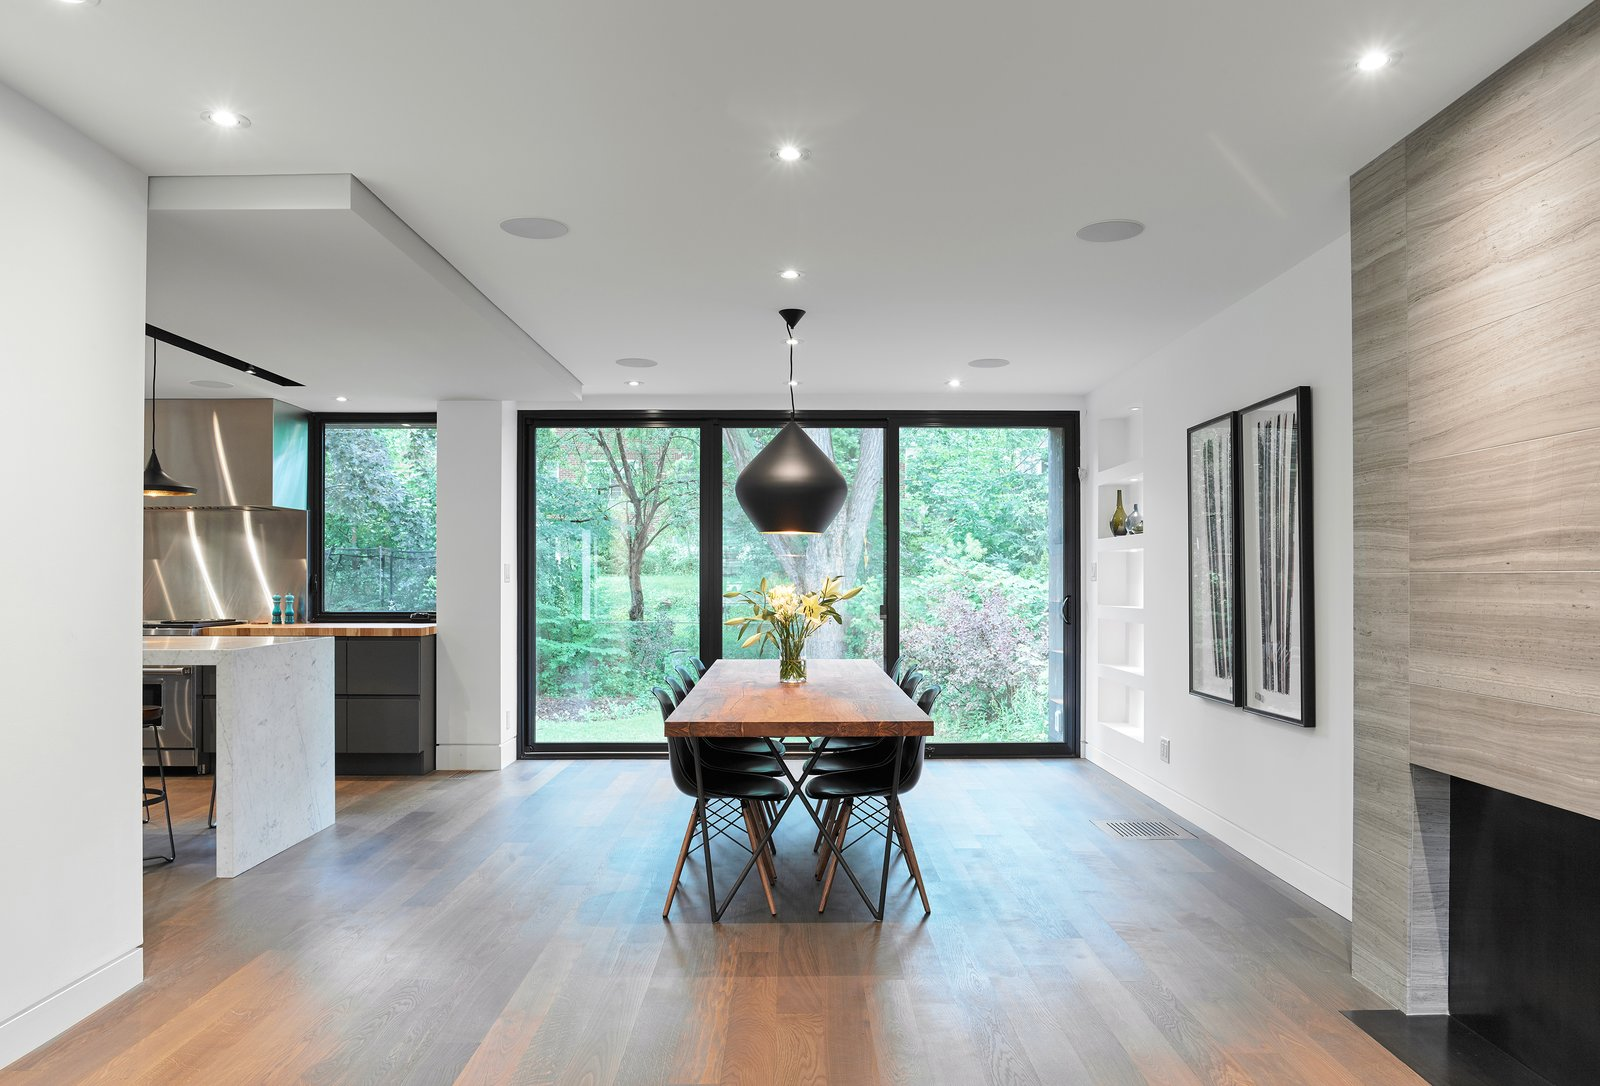 Tagged: Dining Room, Standard Layout Fireplace, Pendant Lighting, Table, Wood Burning Fireplace, Medium Hardwood Floor, Chair, Shelves, and Recessed Lighting.  Hibou House by Barbora Vokac Taylor Architect